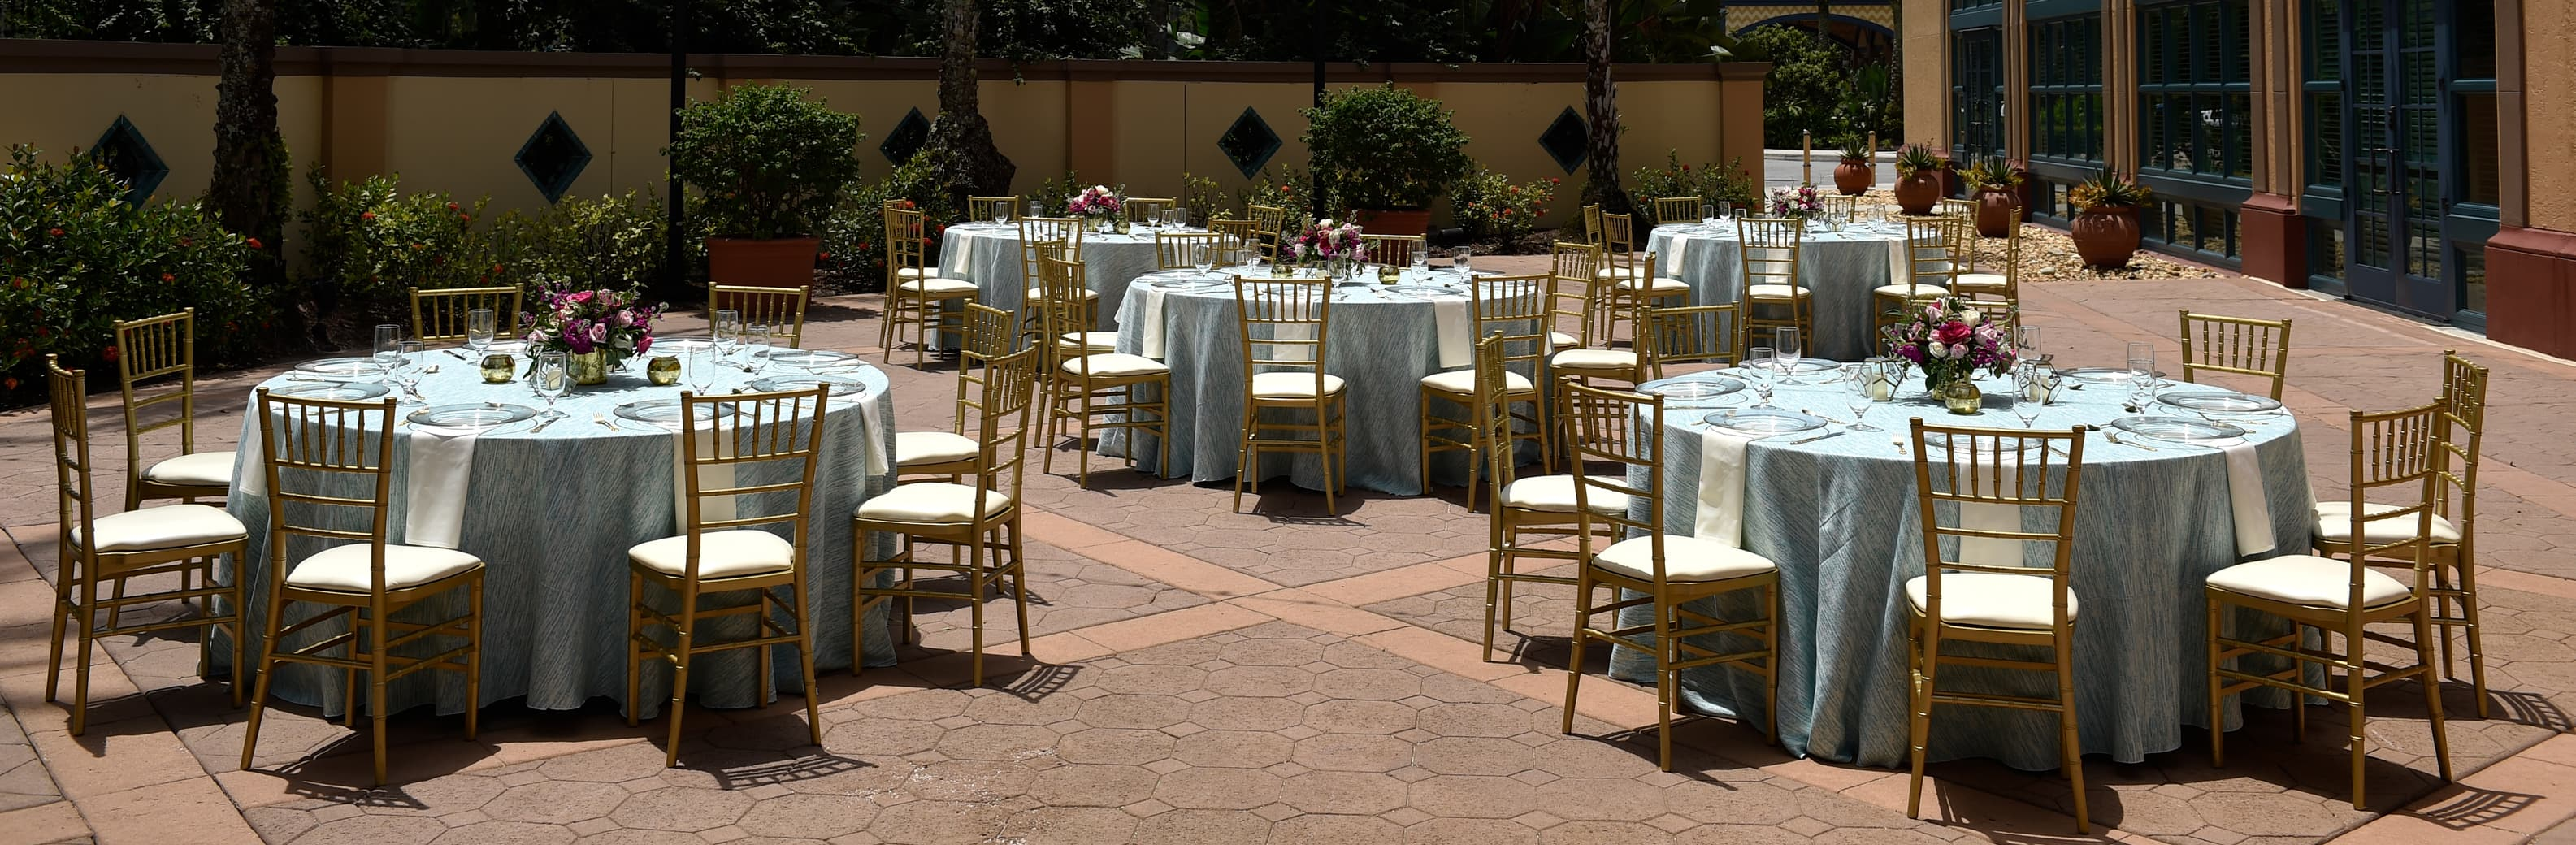 Five circular tables with chairs arranged in a courtyard surrounded by plants